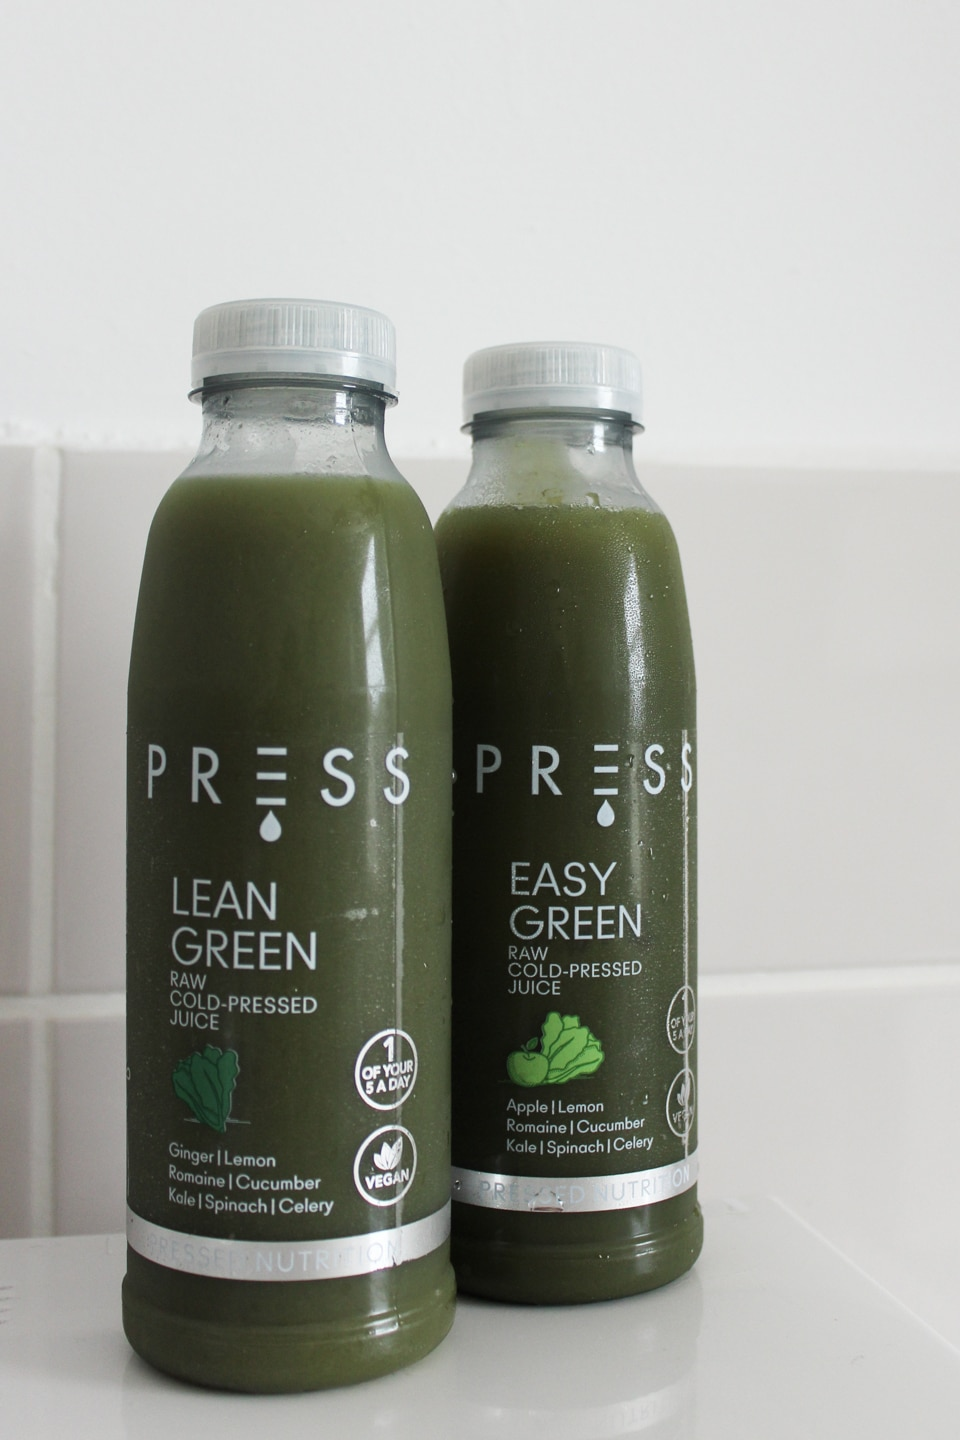 PRESS Lean Green and Easy Green Juices